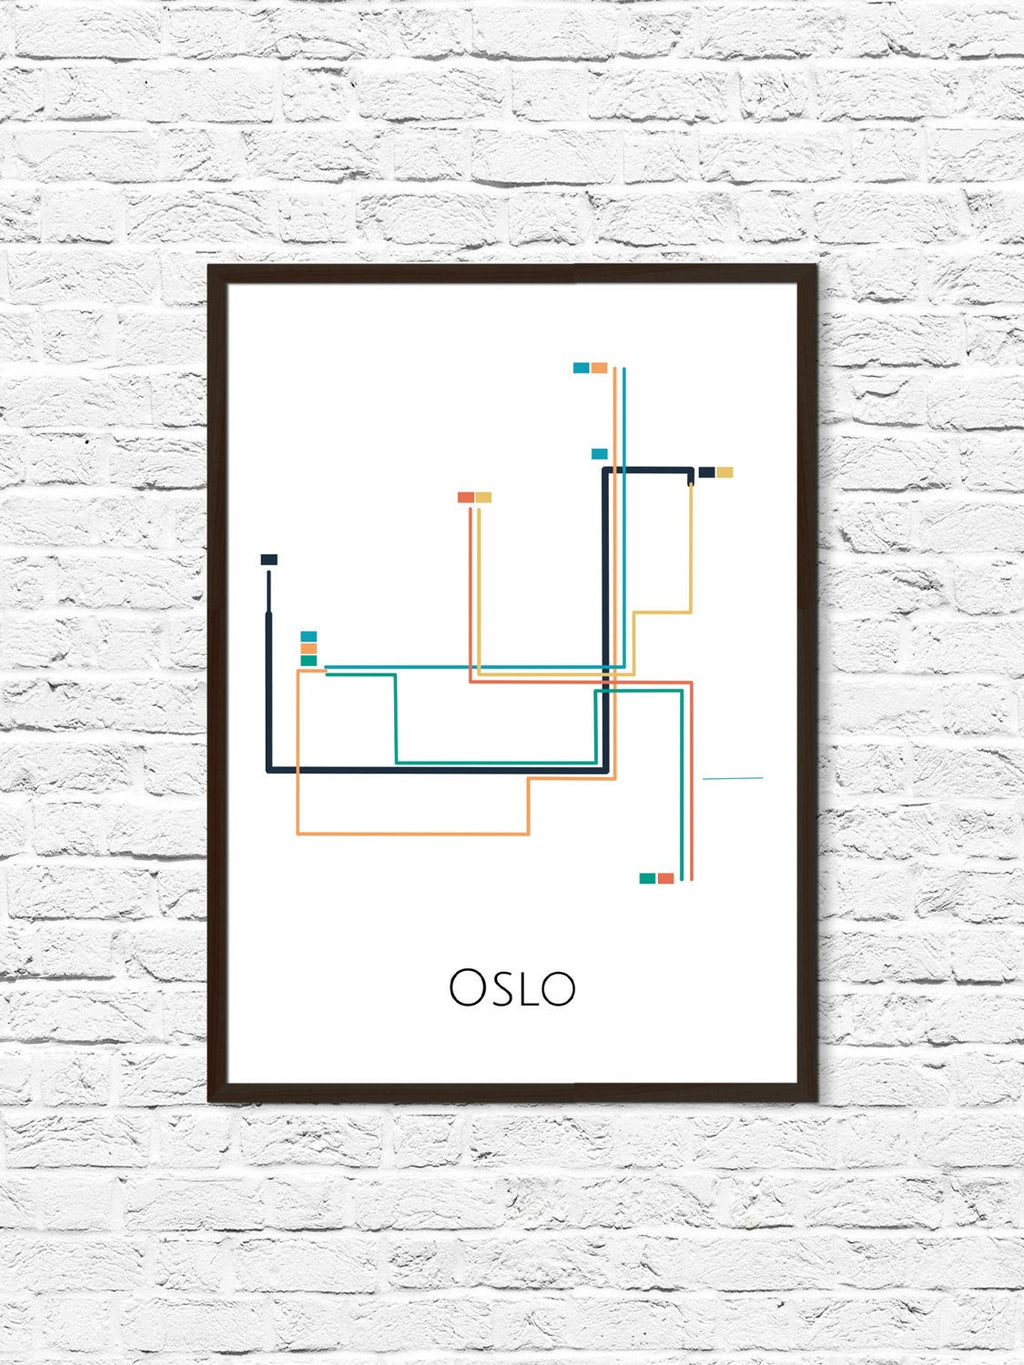 Oslo Metro Map, Oslo T-bane,  Oslo Map Art, Oslo Metro Art, Oslo, Norway, Metro Map, Subway Map, Oslo Print, Oslo Poster - ParMar Media